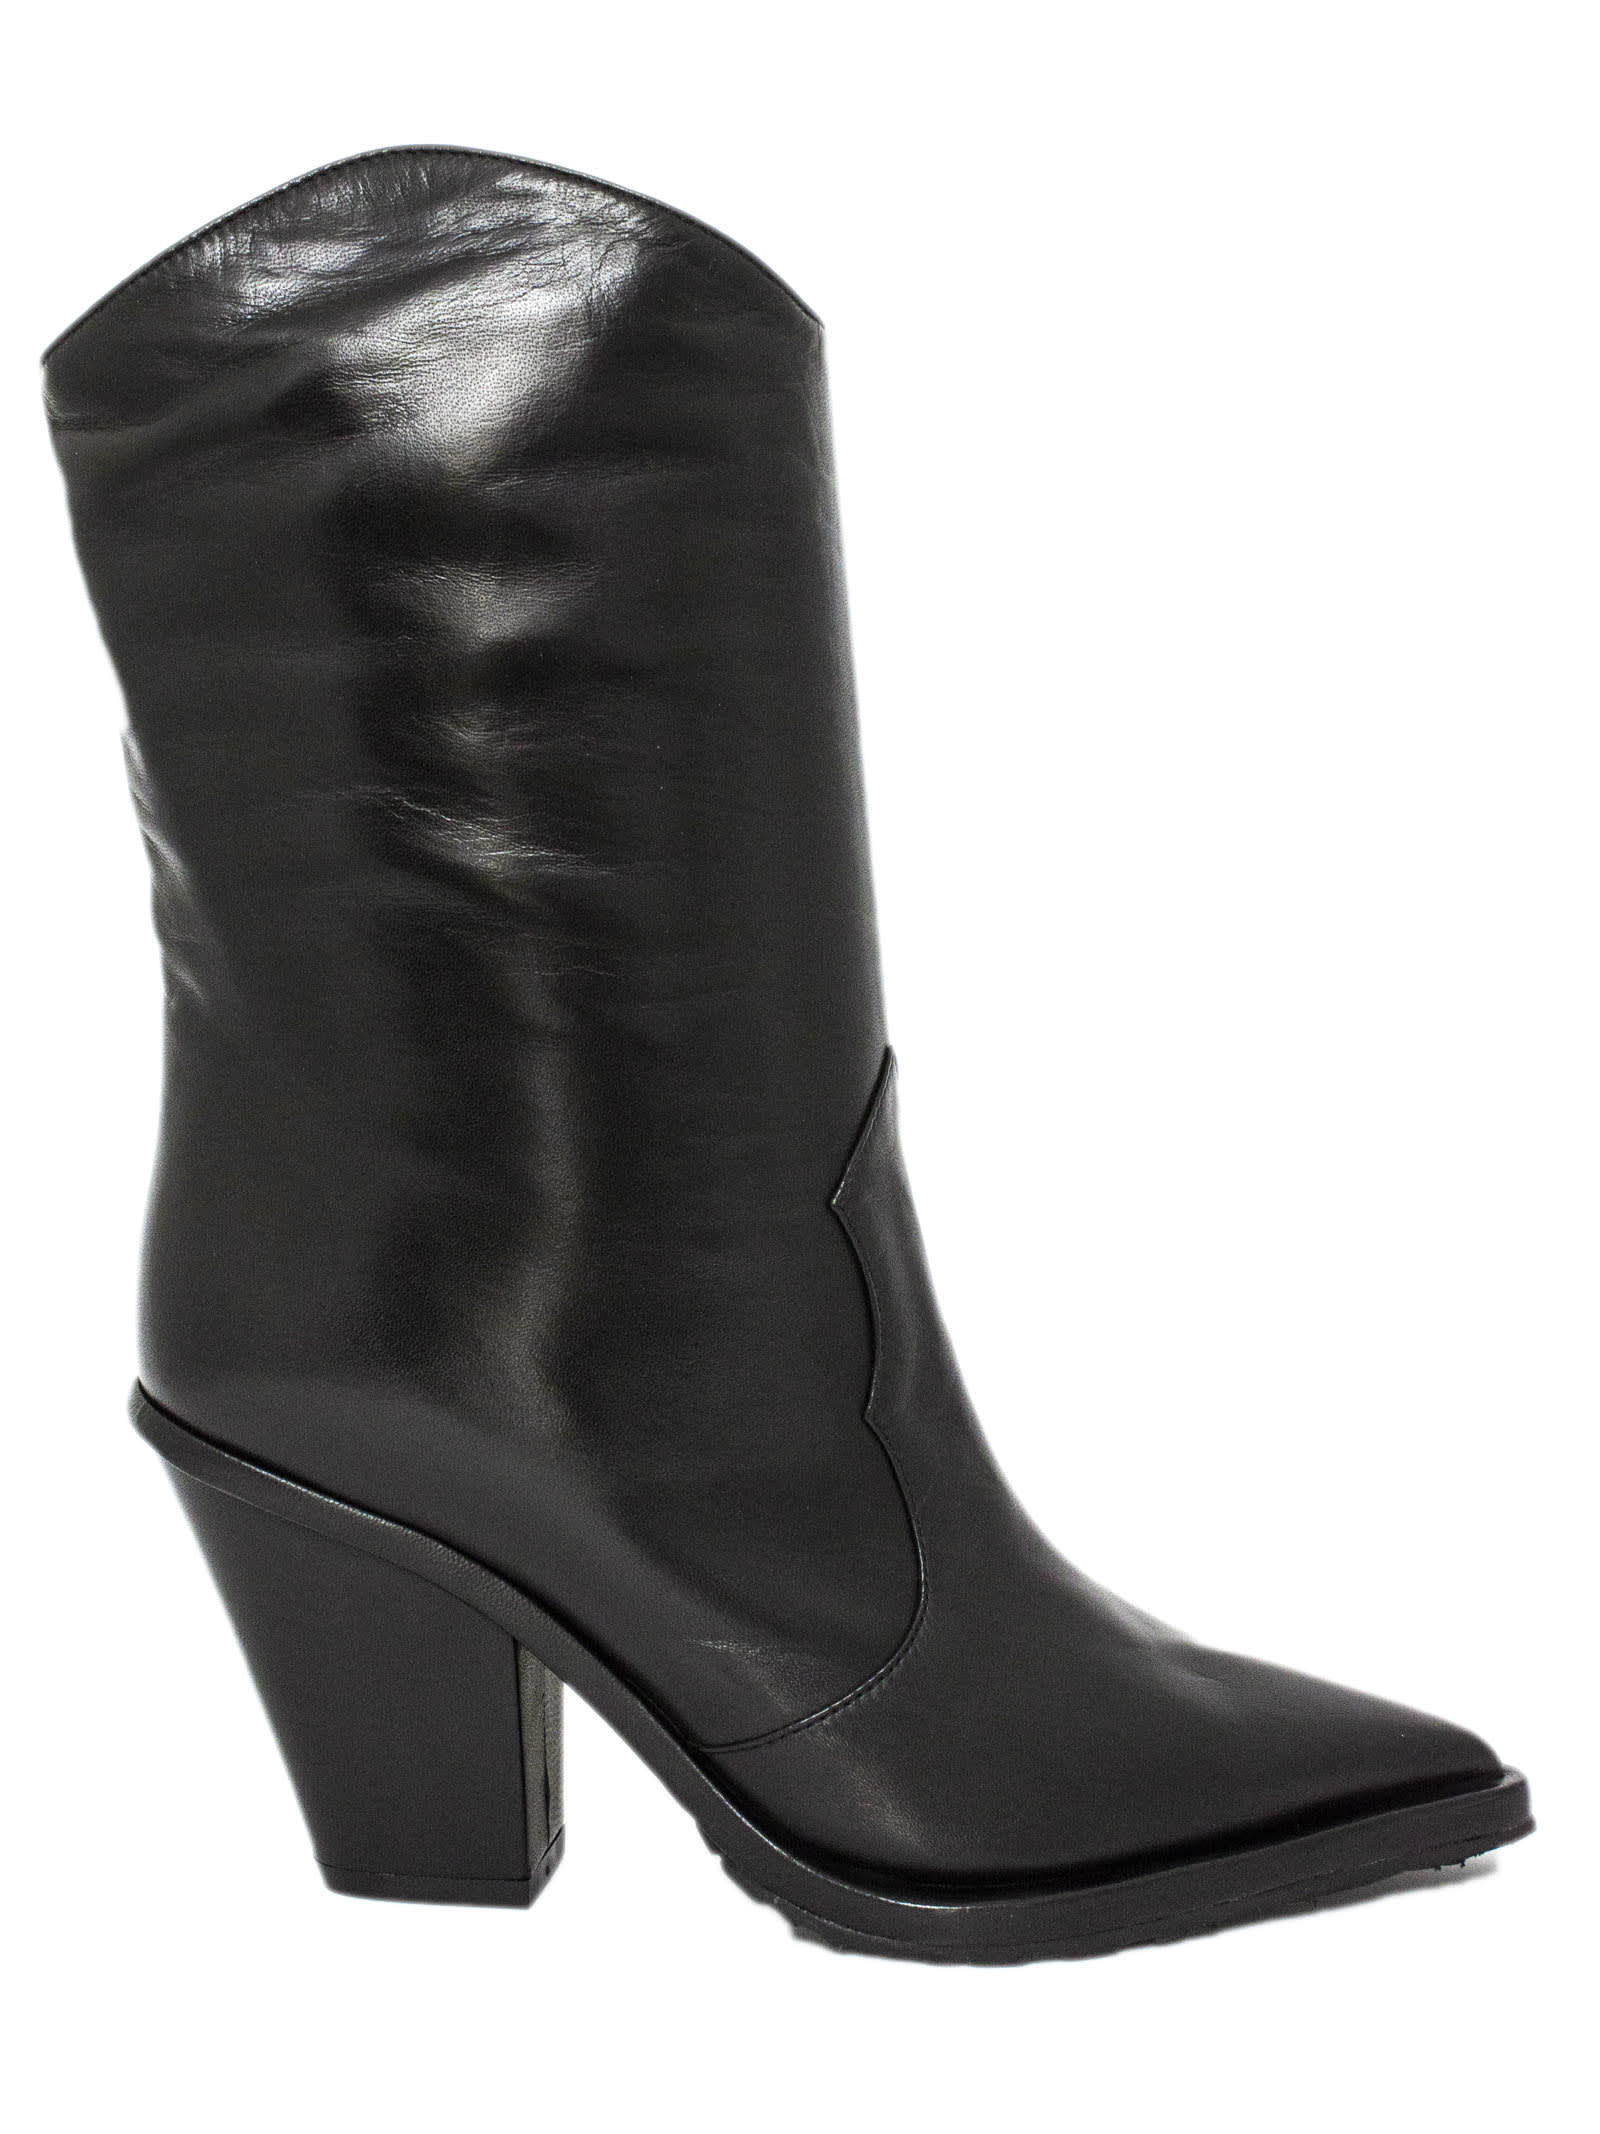 Aldo Castagna Black Leather Cecilia Boots